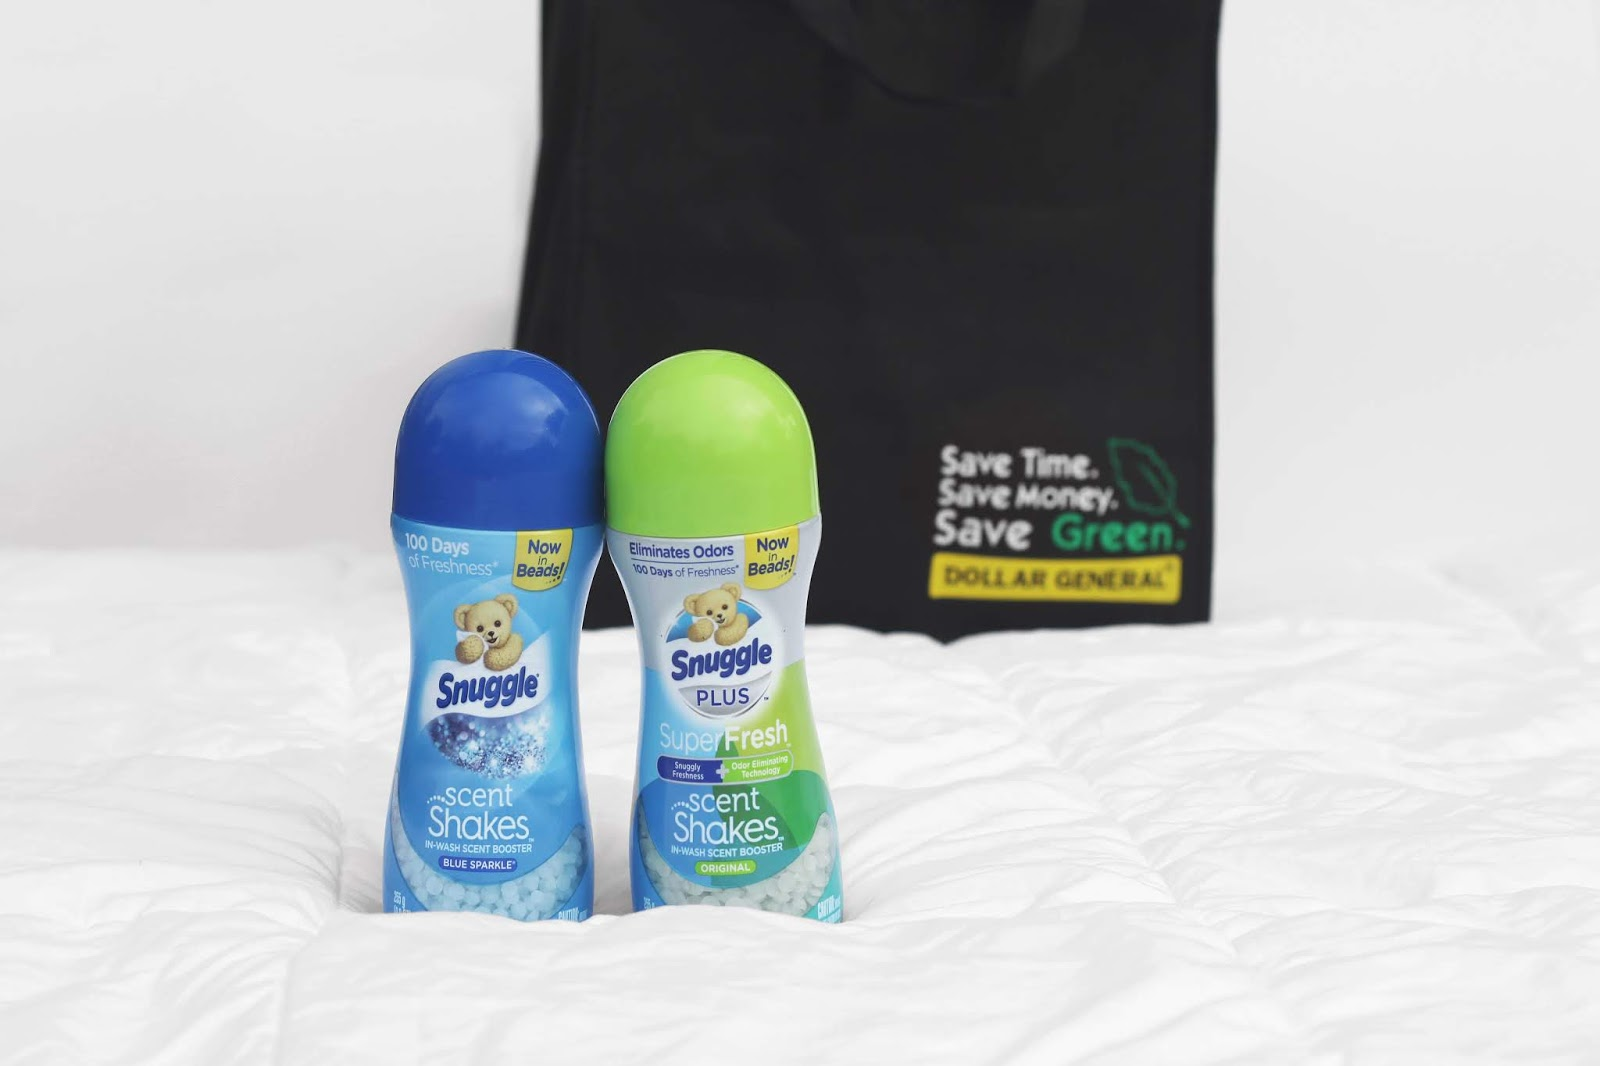 Snuggle Scent Shakes at Dollar General, Snuggle Laundry Products